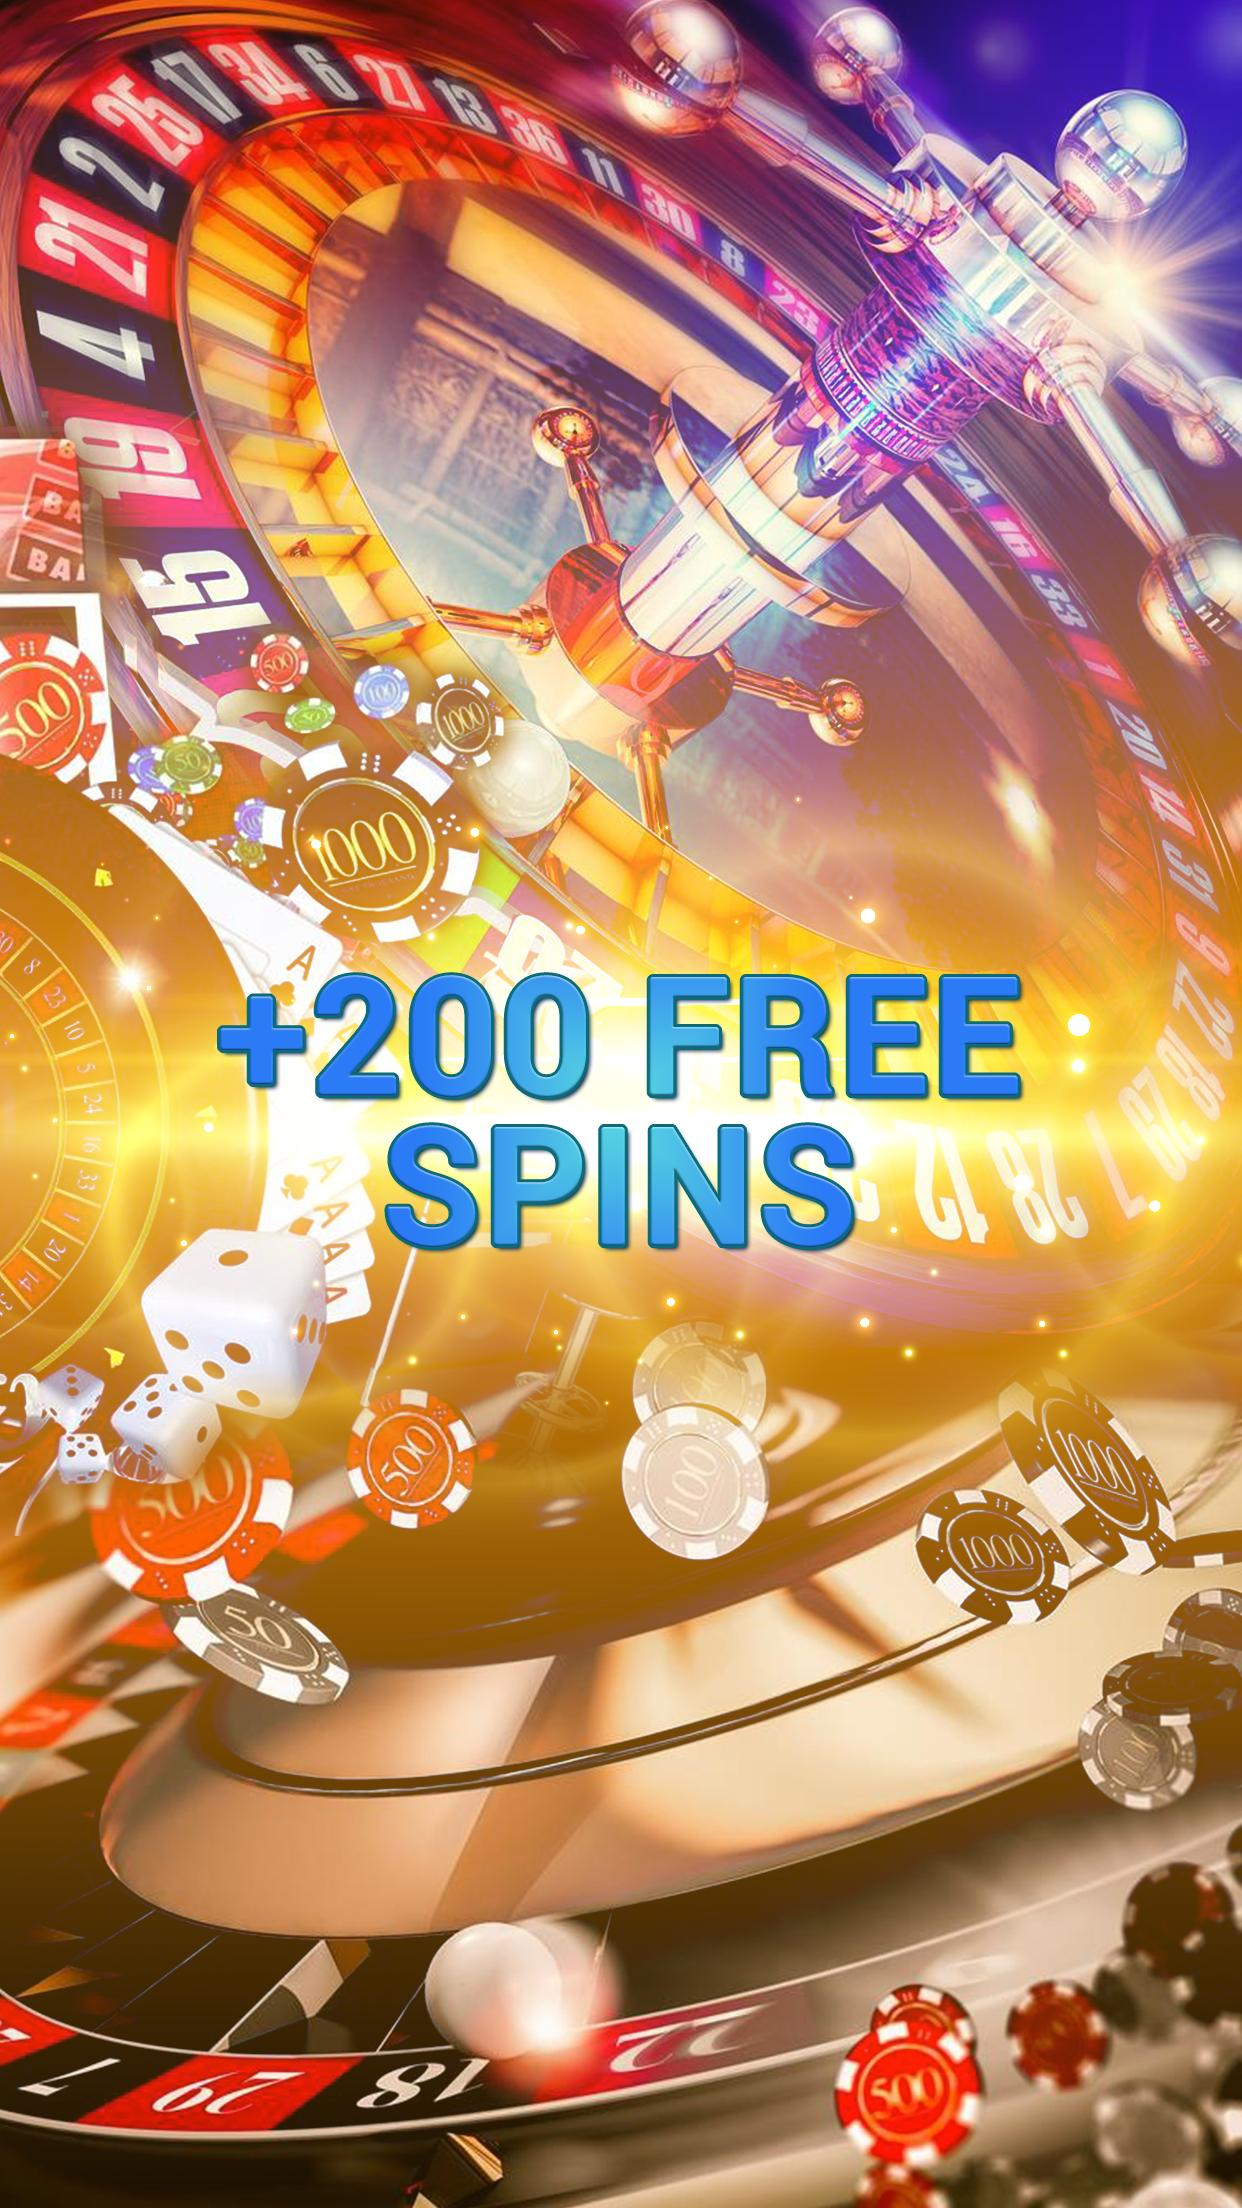 Online Casino on the Cruise - Mobile Slots App 1.0 Screenshot 1